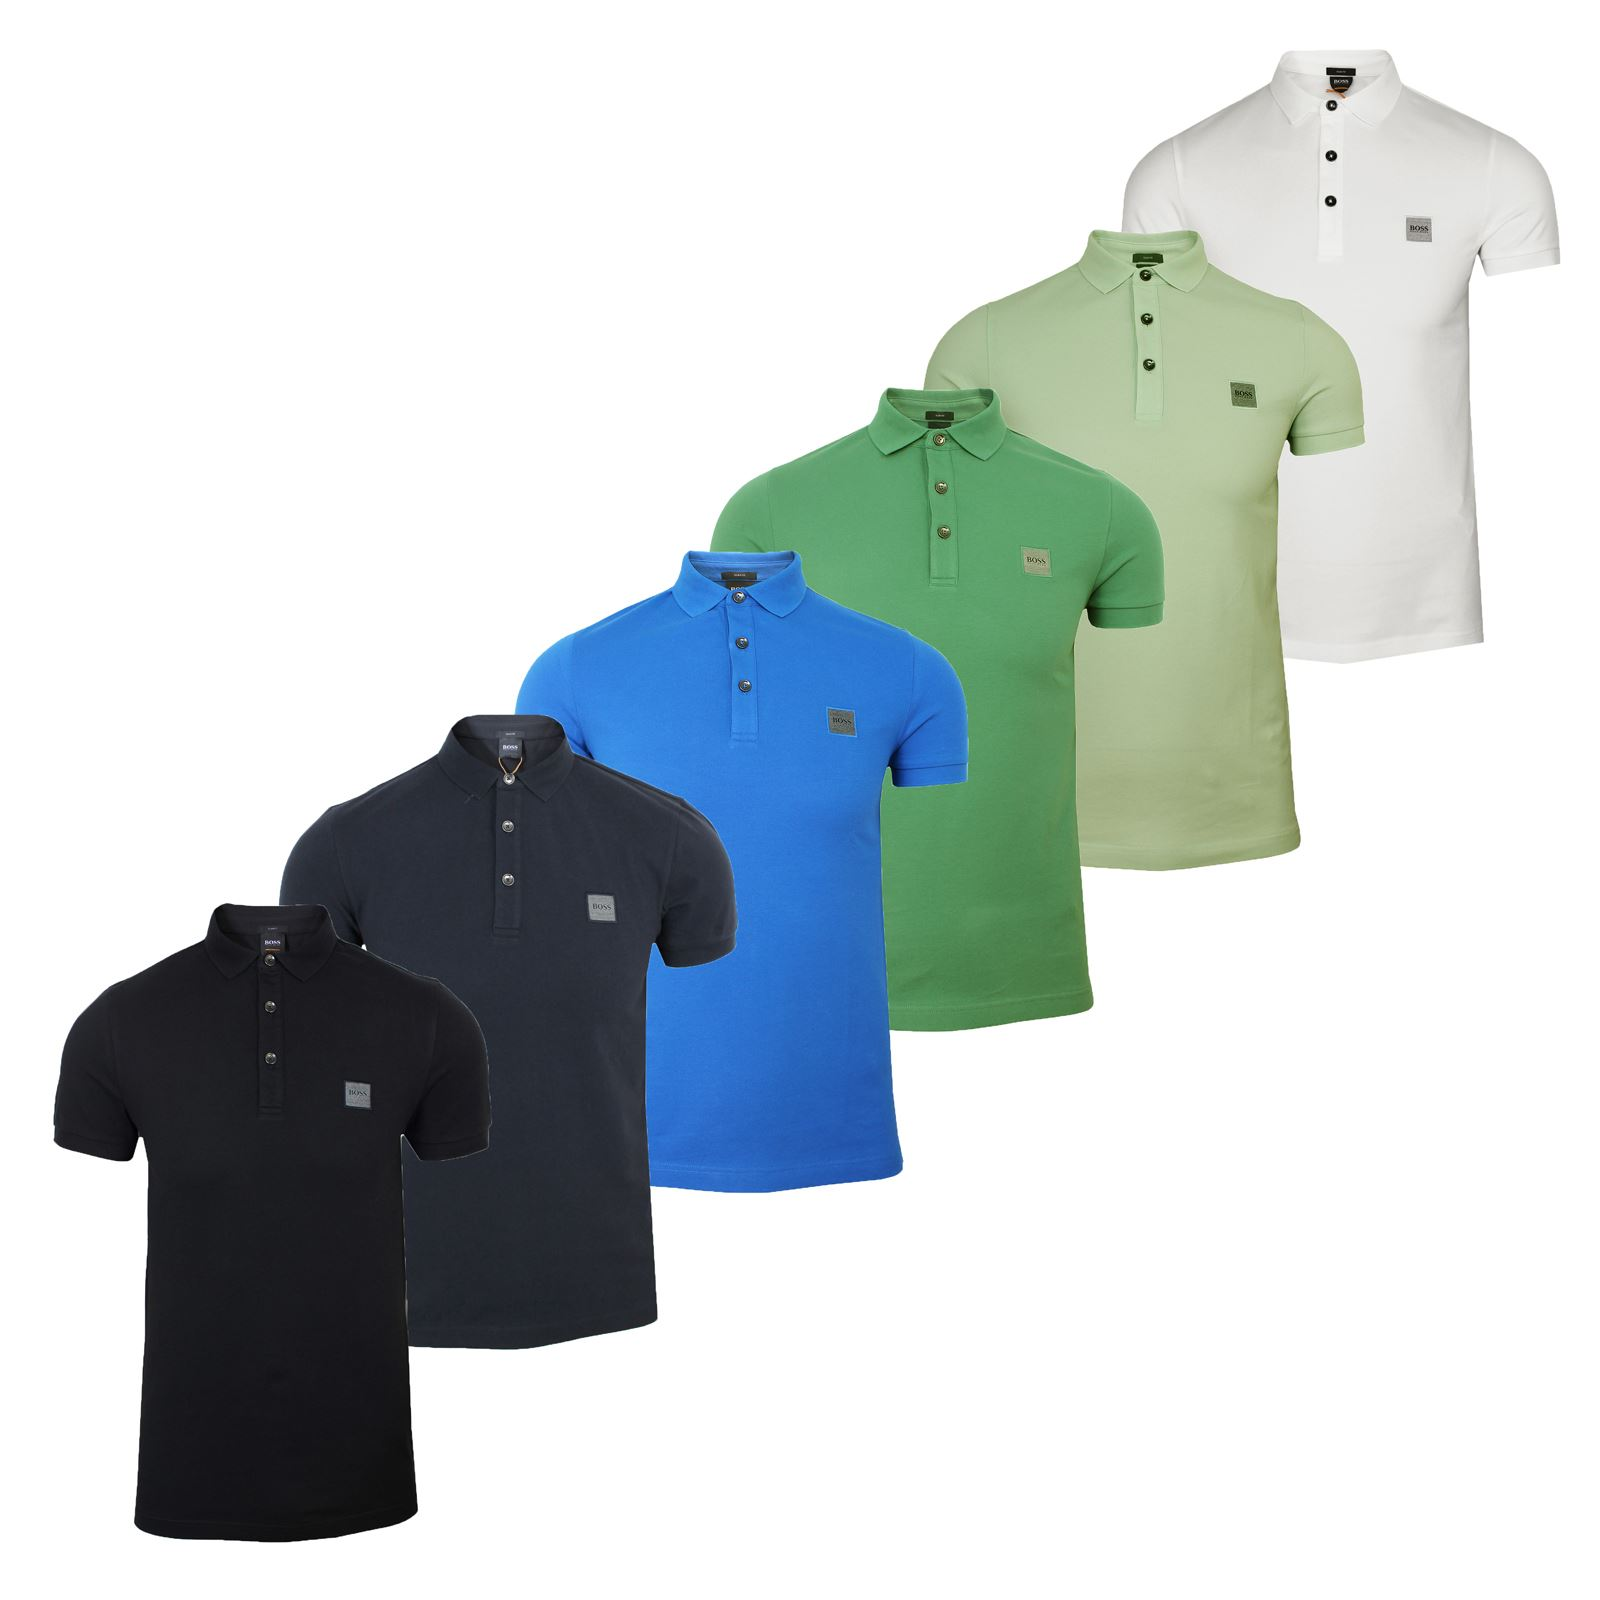 1a2727aa3f HUGO BOSS PASSENGER. Item Description; Hugo Boss Passenger men's polo shirt  ...